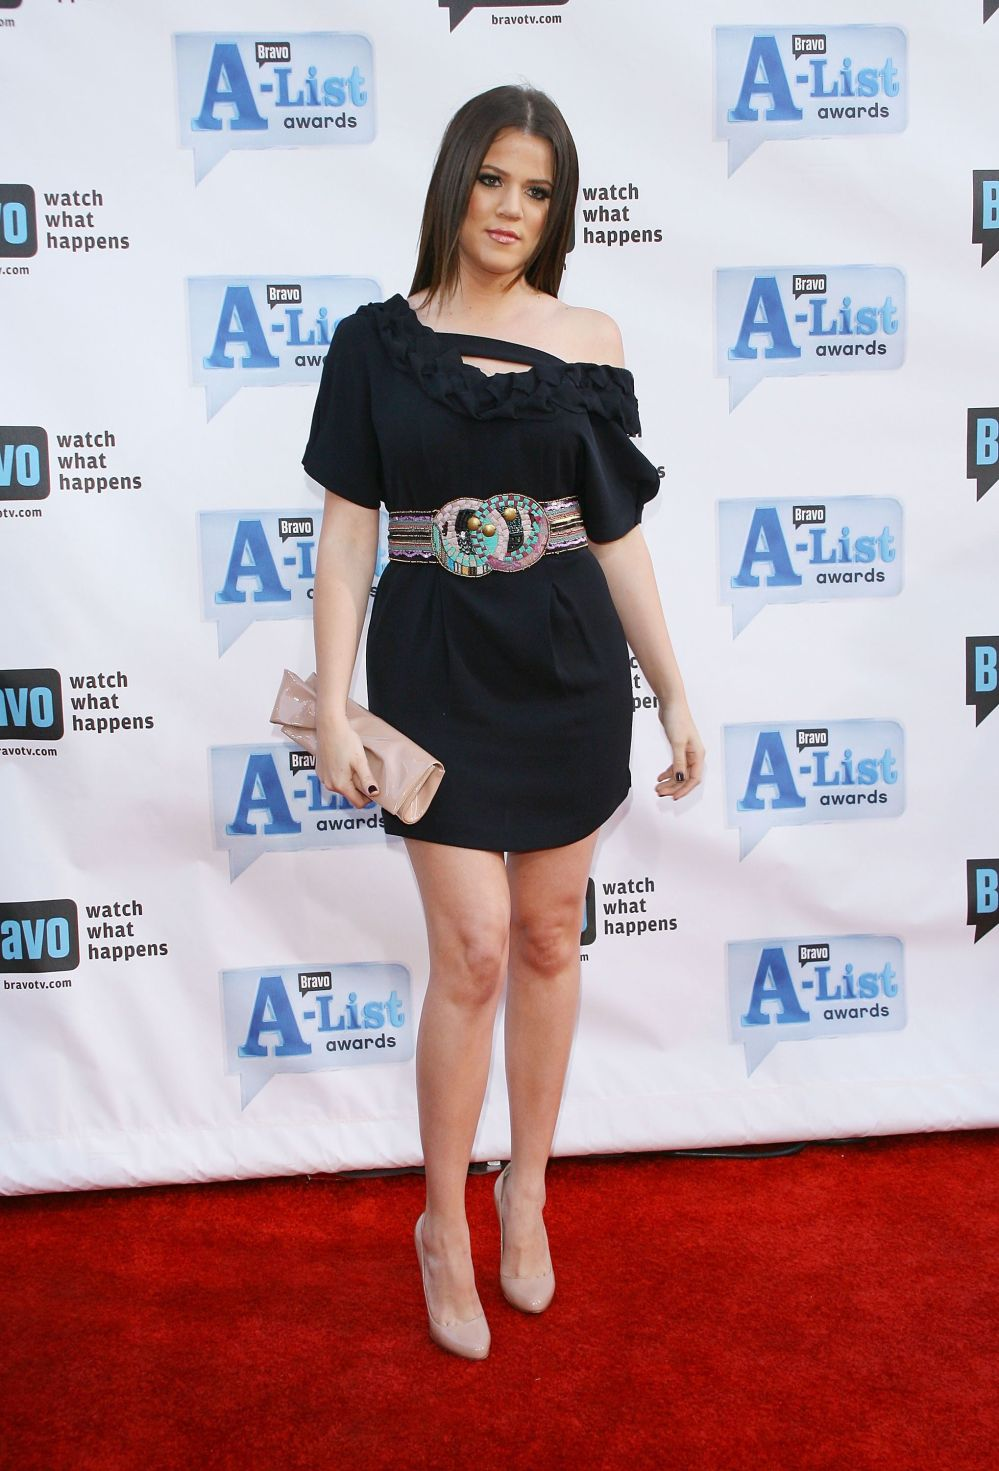 At Bravo's A-List Awards at The Orpheum Theatre in Los Angeles.